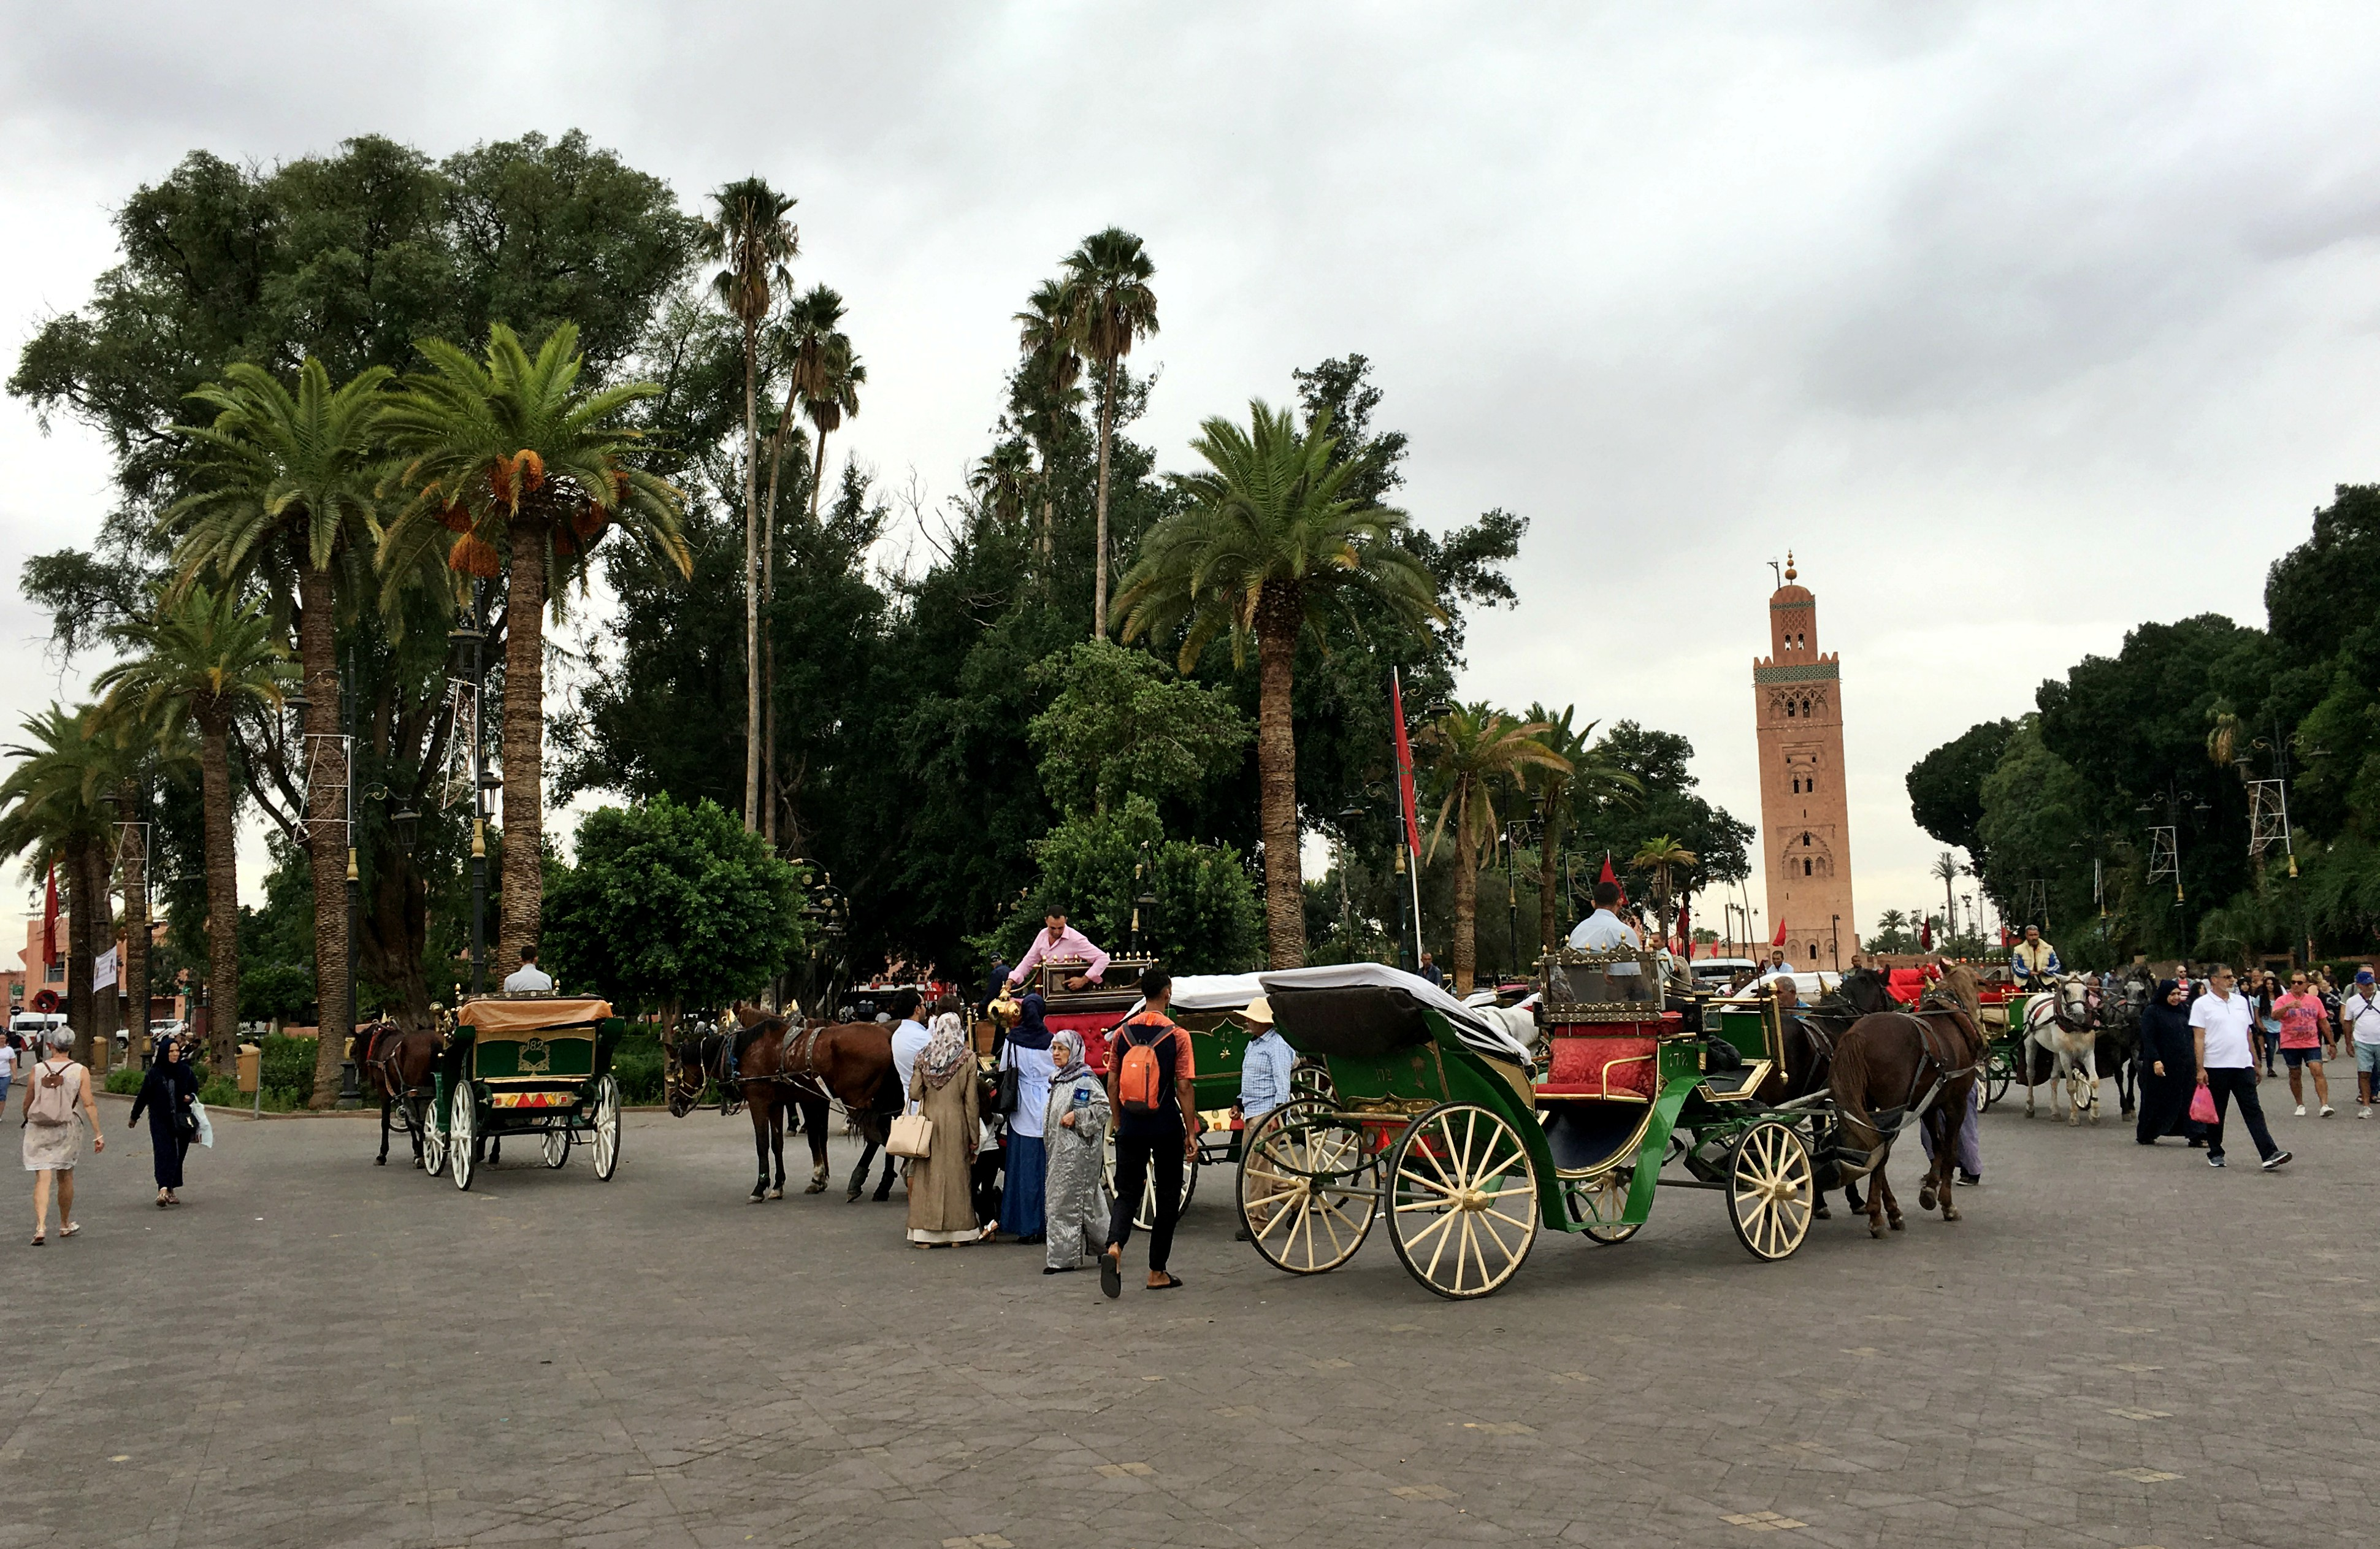 The Koutoubia Mosque seen in Place Jemaa el-Fnaa. Photo: Christine Hogg for PAX Global Media